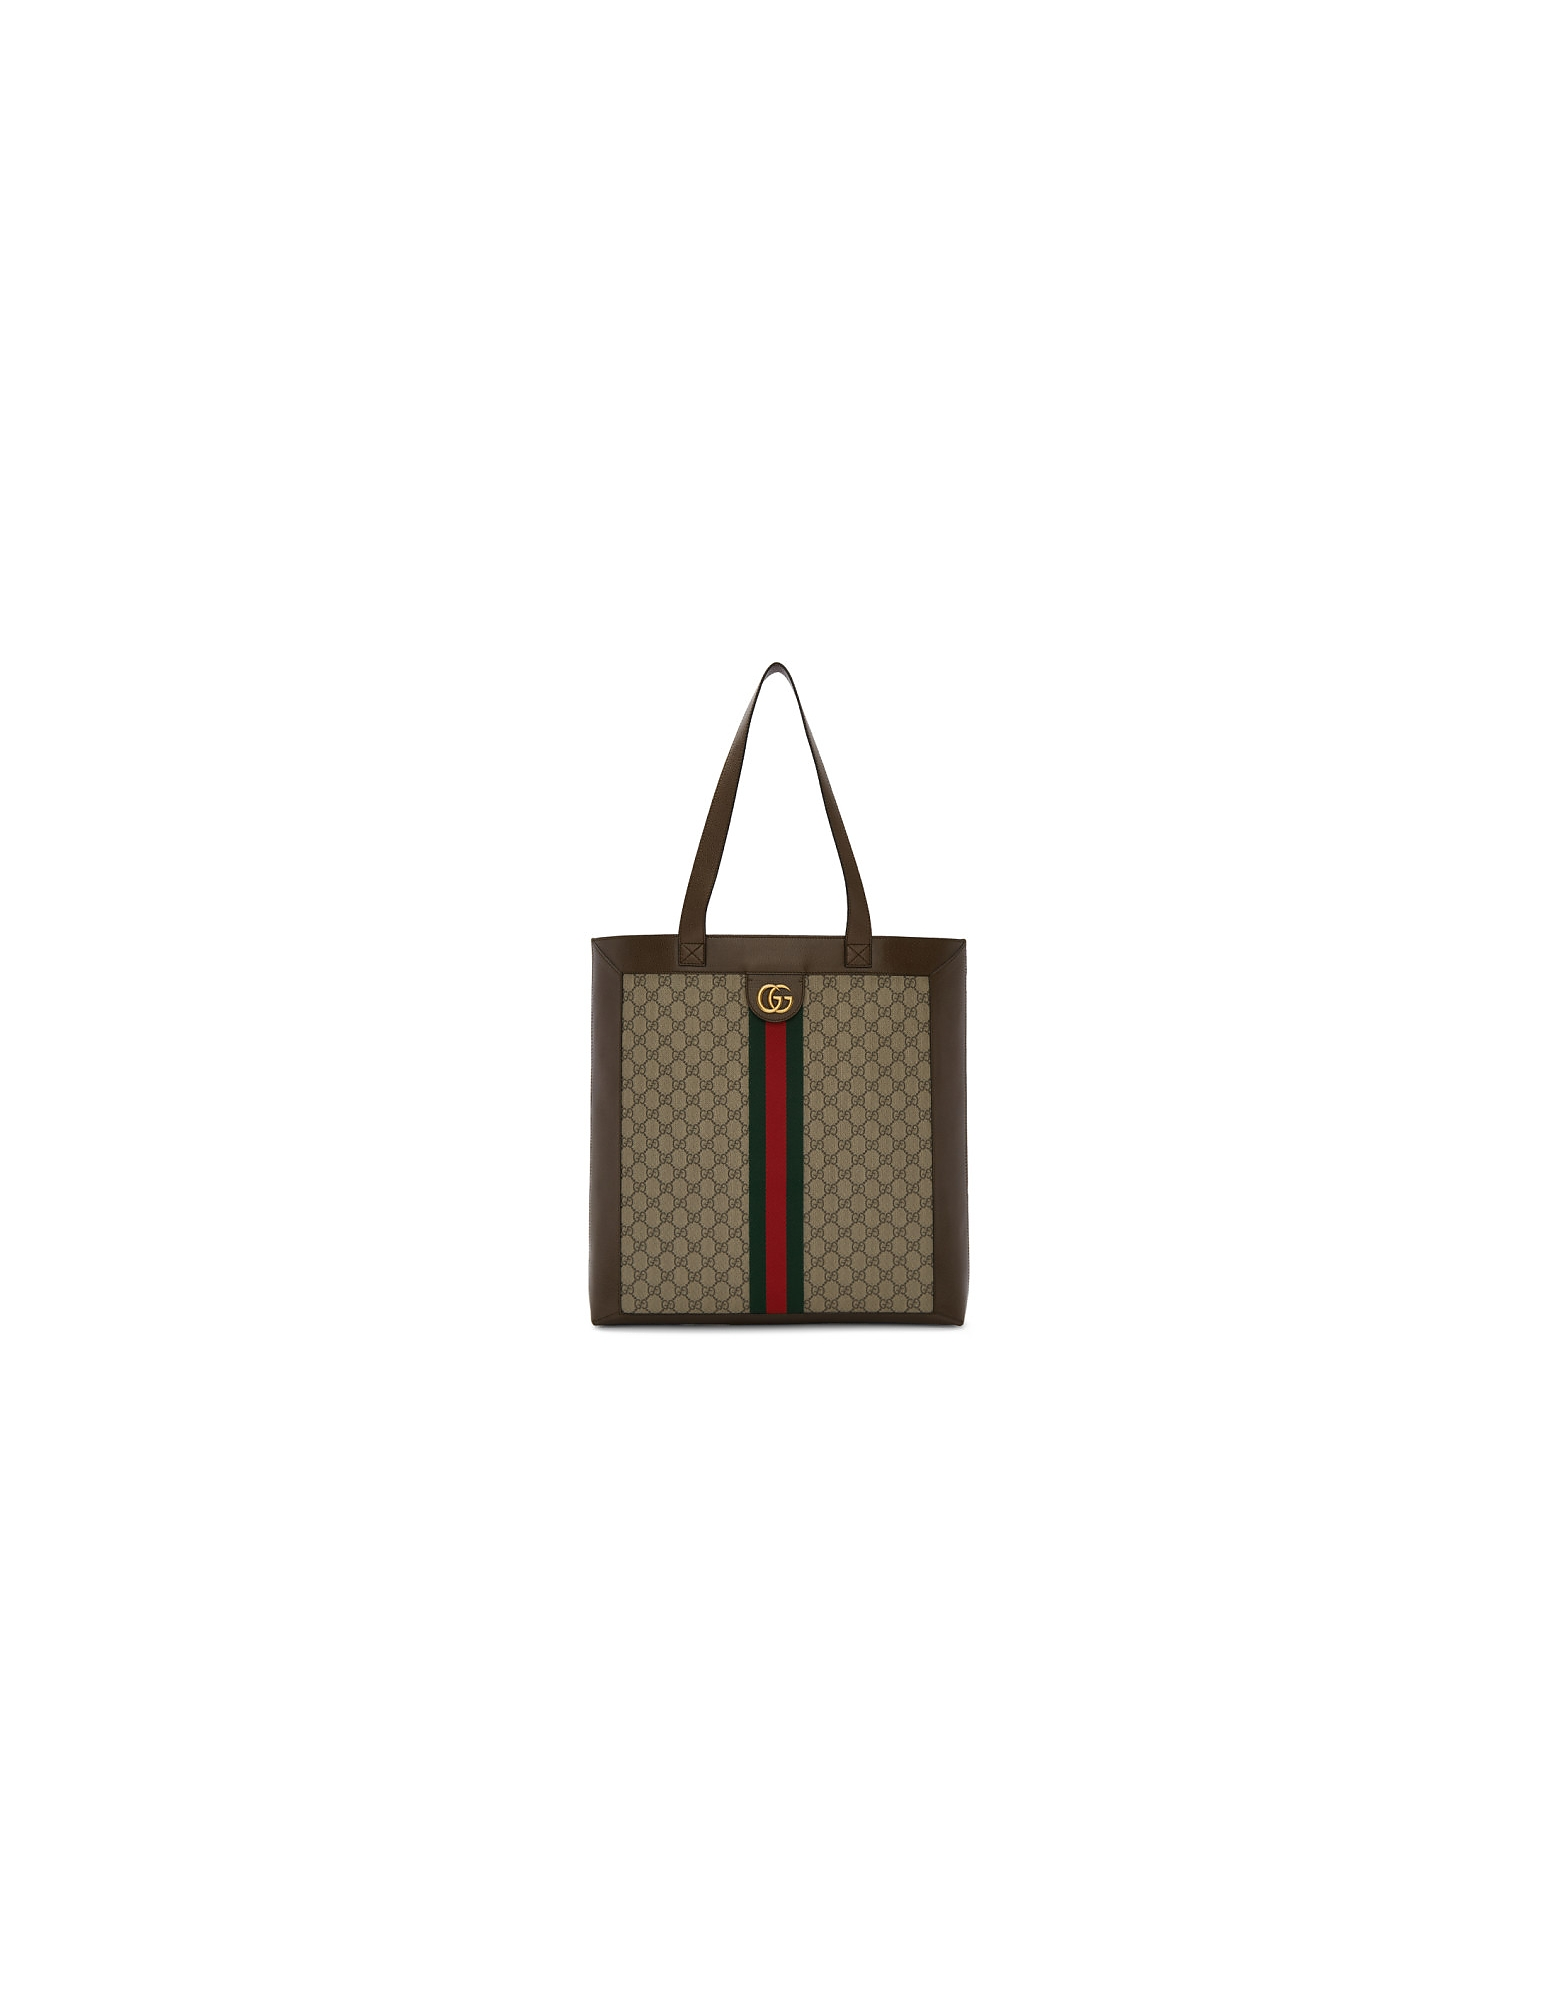 Gucci Designer Handbags, Brown and Beige GG Ophidia Tote